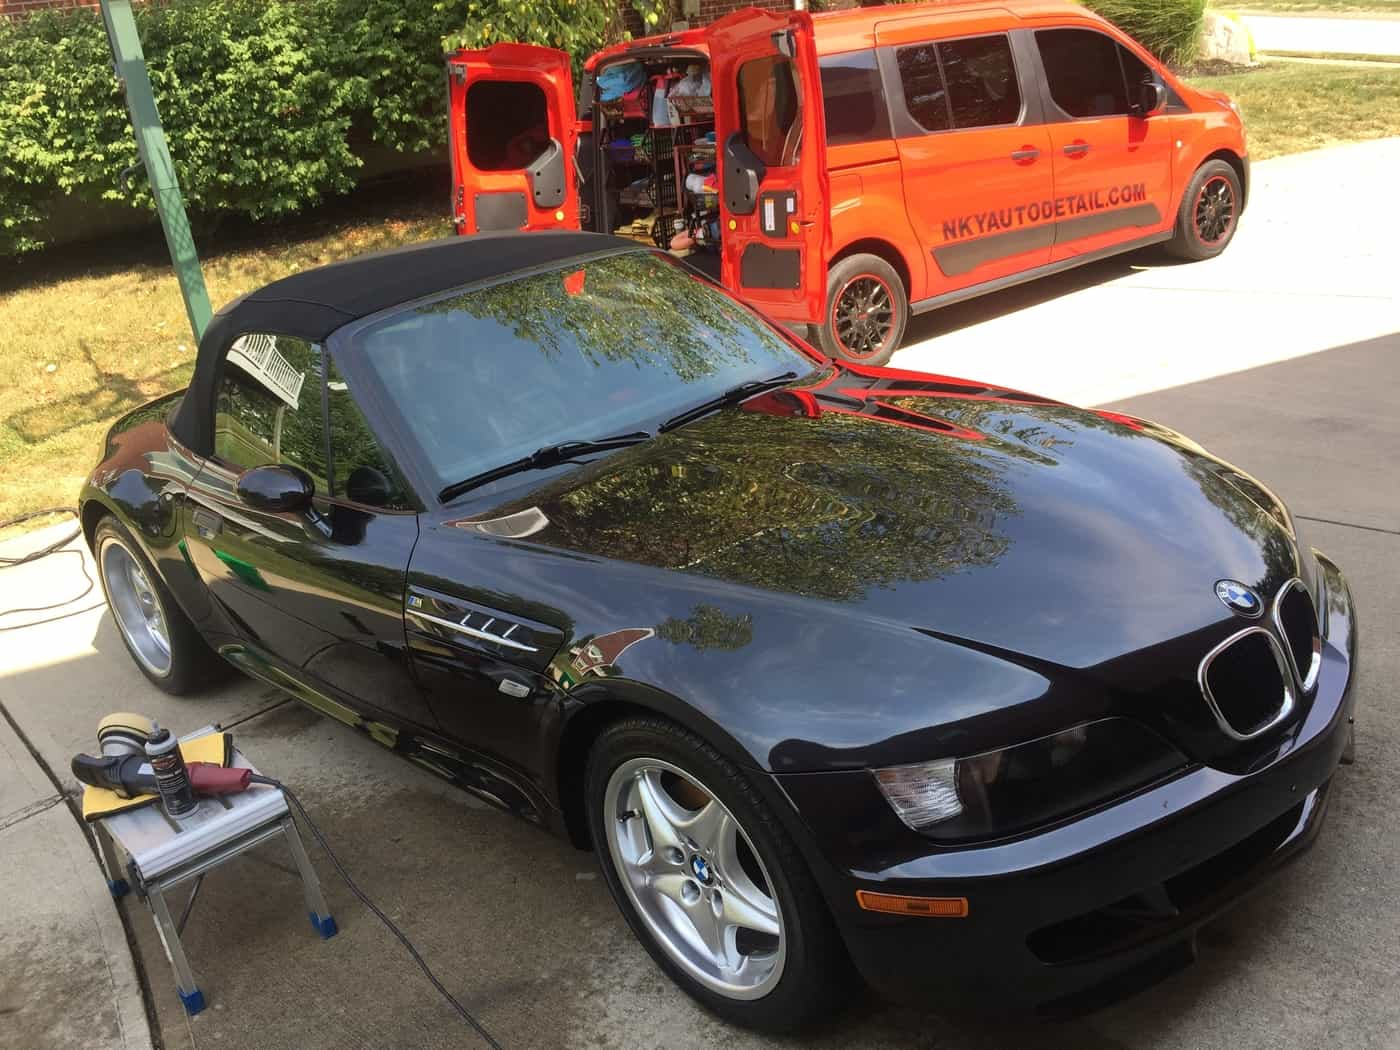 Northern KY Auto Detailing